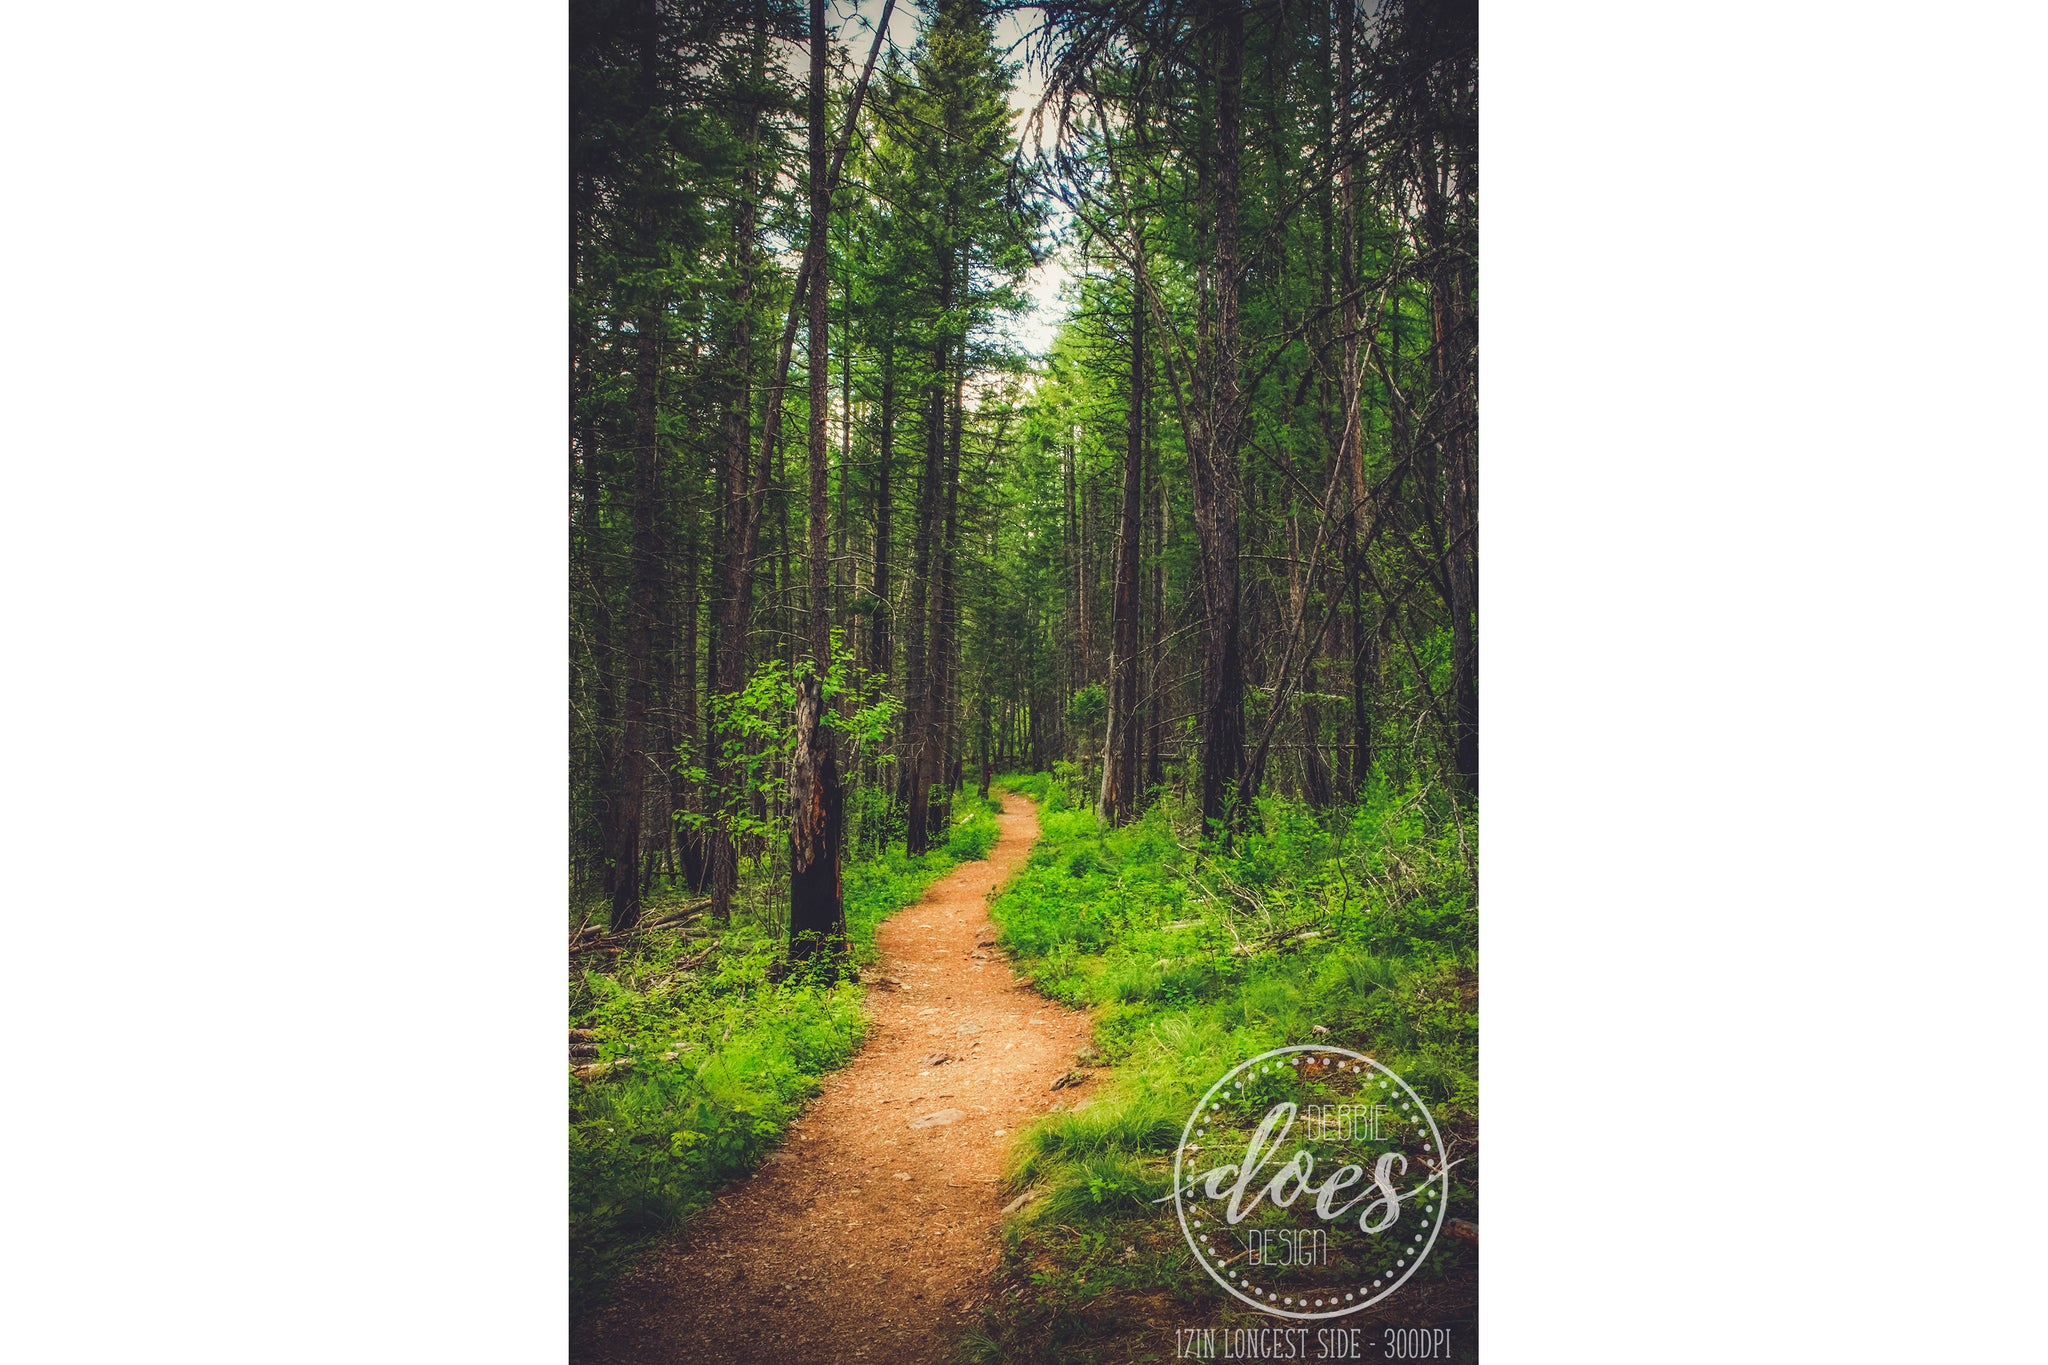 Forest Path - High Res Digital Photograph